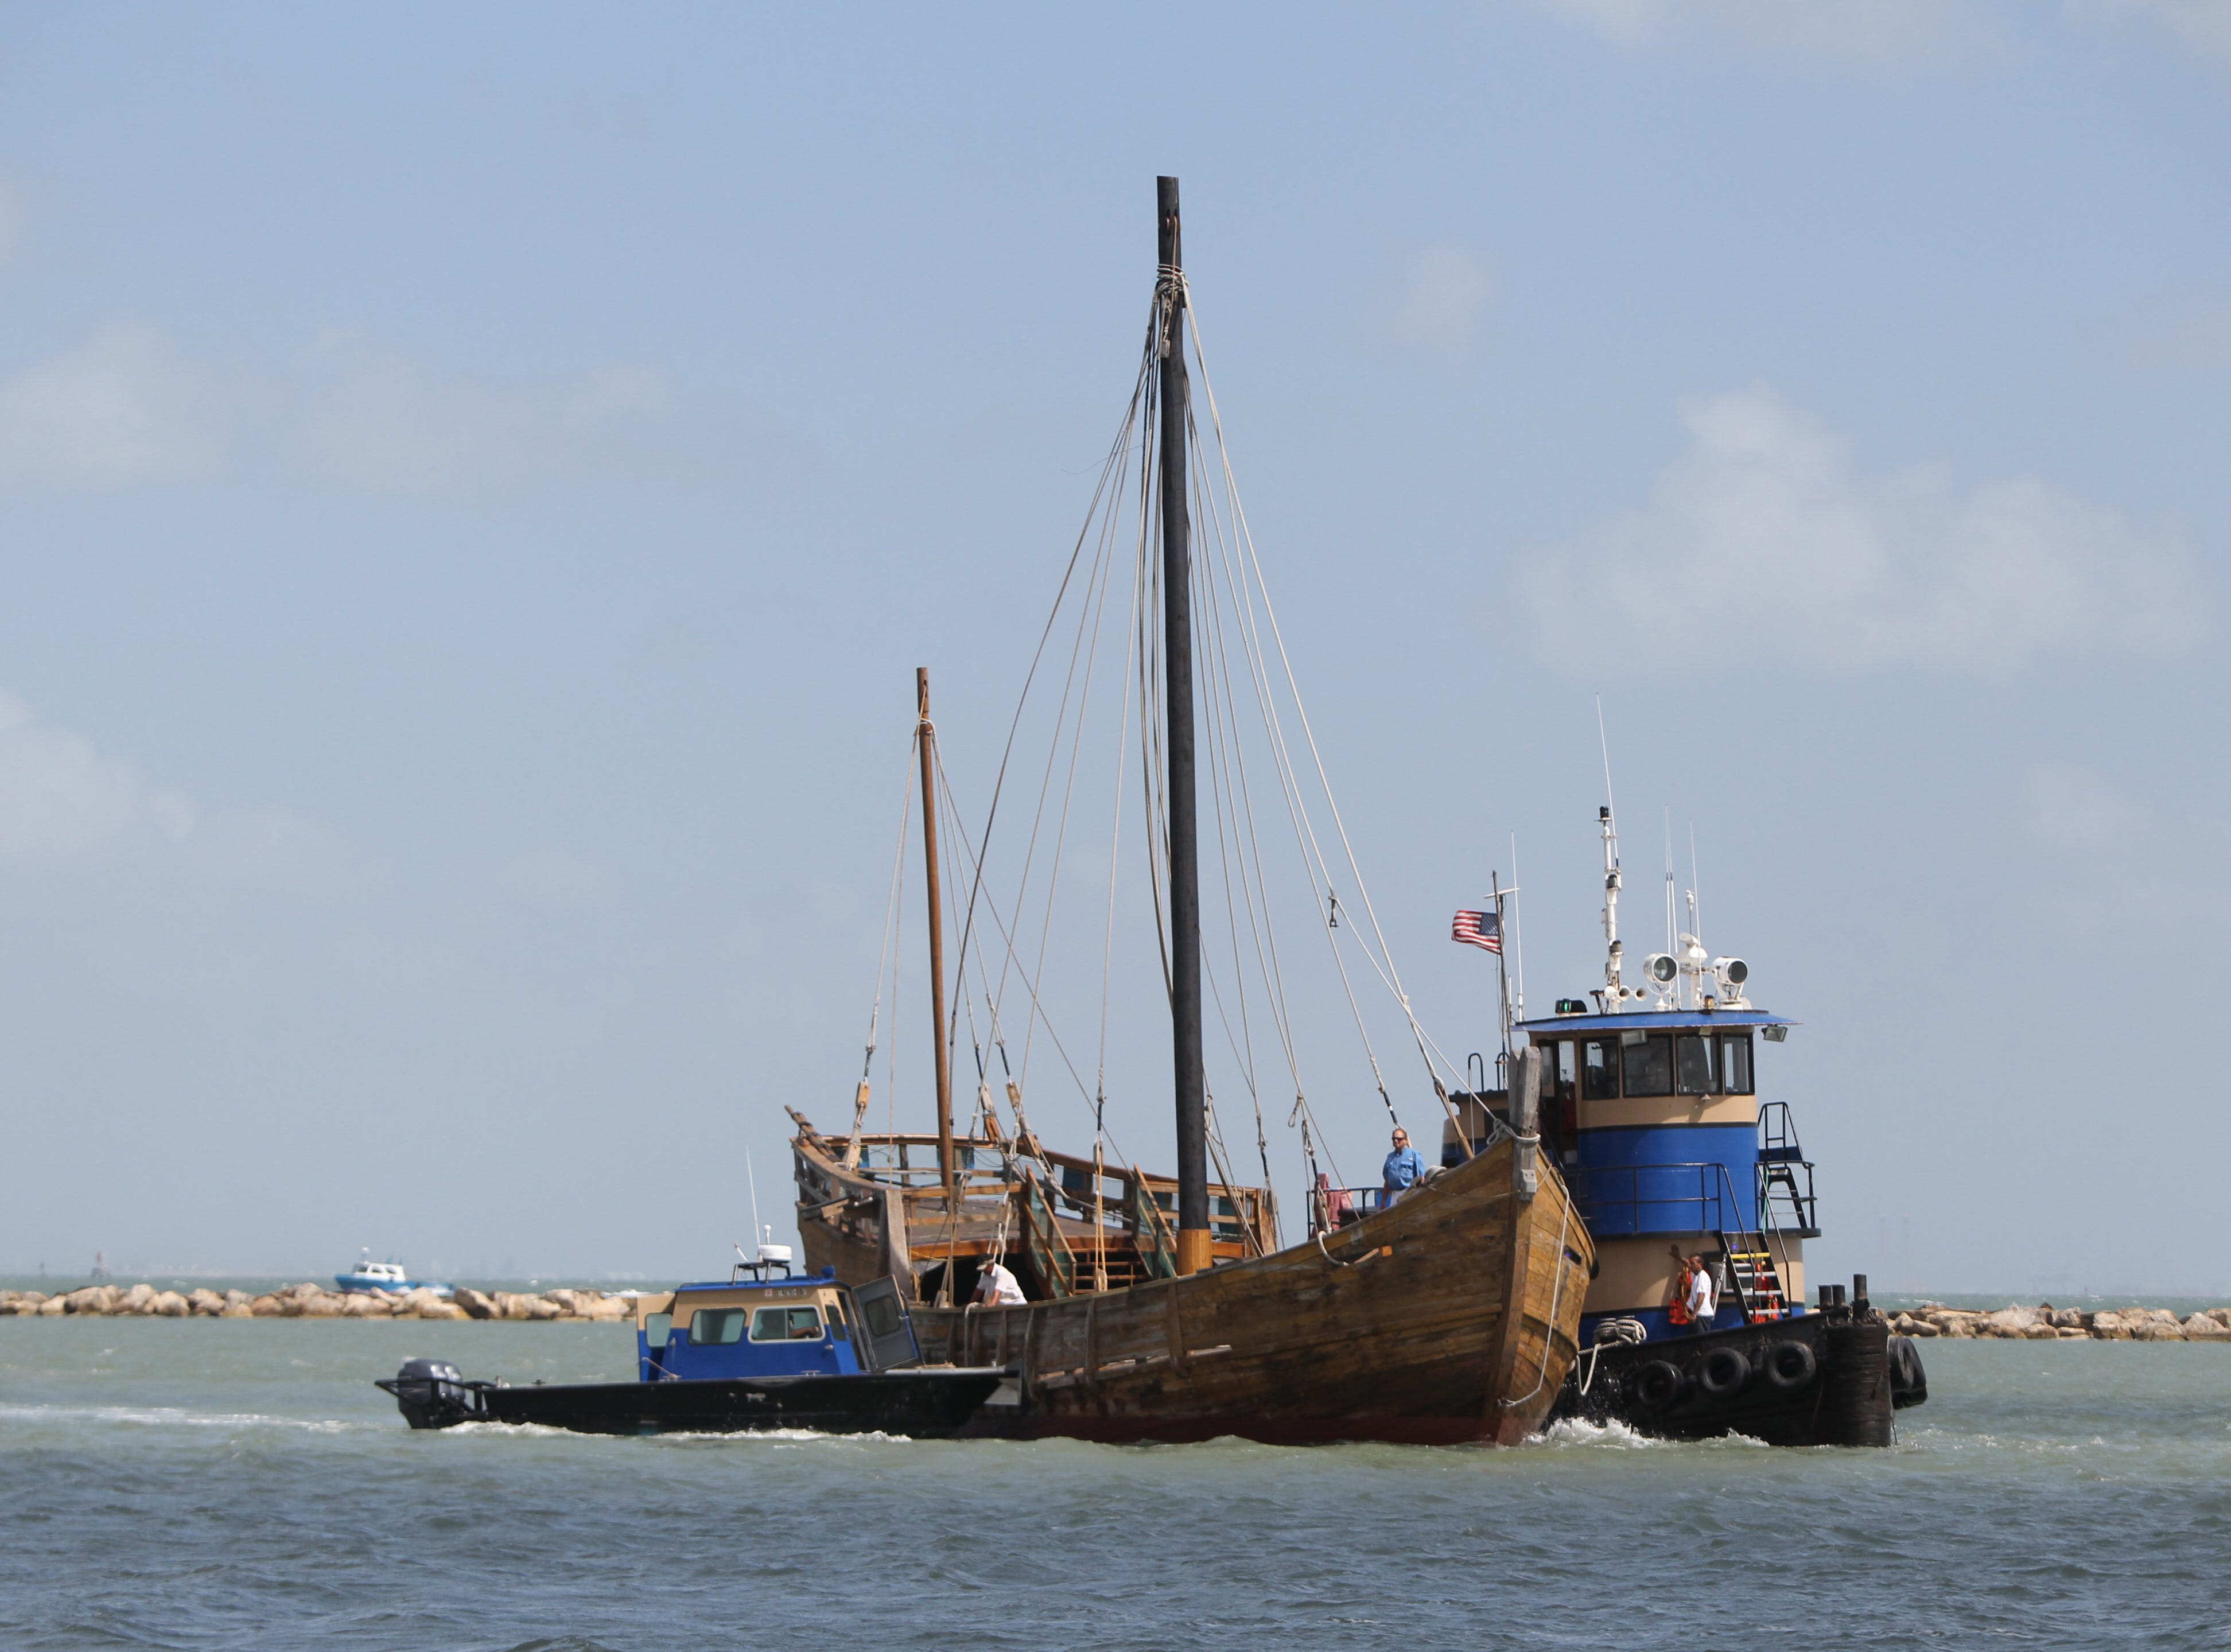 The last remaining Columbus Ship replica, La Nina, travels through Corpus Christi Bay on Friday, October 10, 2014 as it is prepared to be berthed at a new location at the Lawrence Street T-Head behind Joe's Crab Shack. The new location will allow for better protection from the elements, said Kim Mrazek, president of the Columbus Sailing Association.